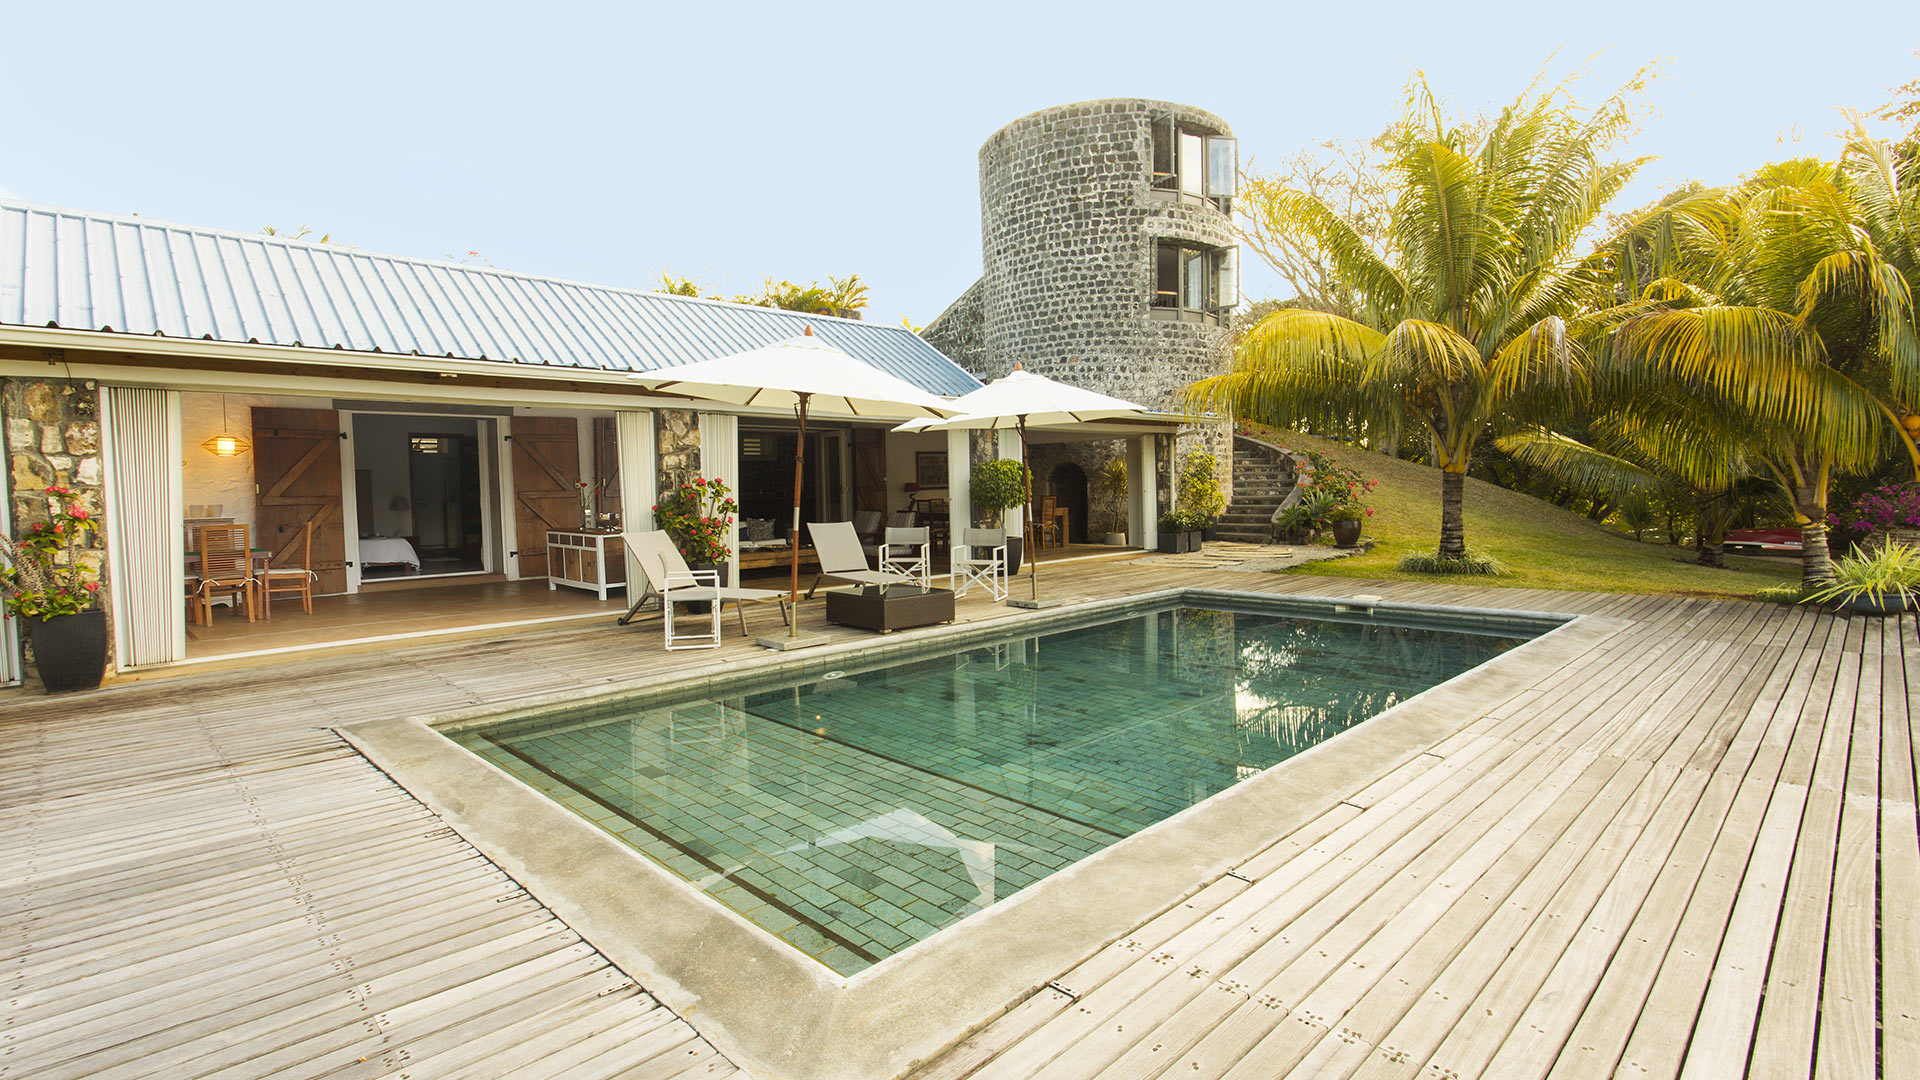 villa anse fauverelle villa in affitto a mauritius sud est 2 villanovo. Black Bedroom Furniture Sets. Home Design Ideas